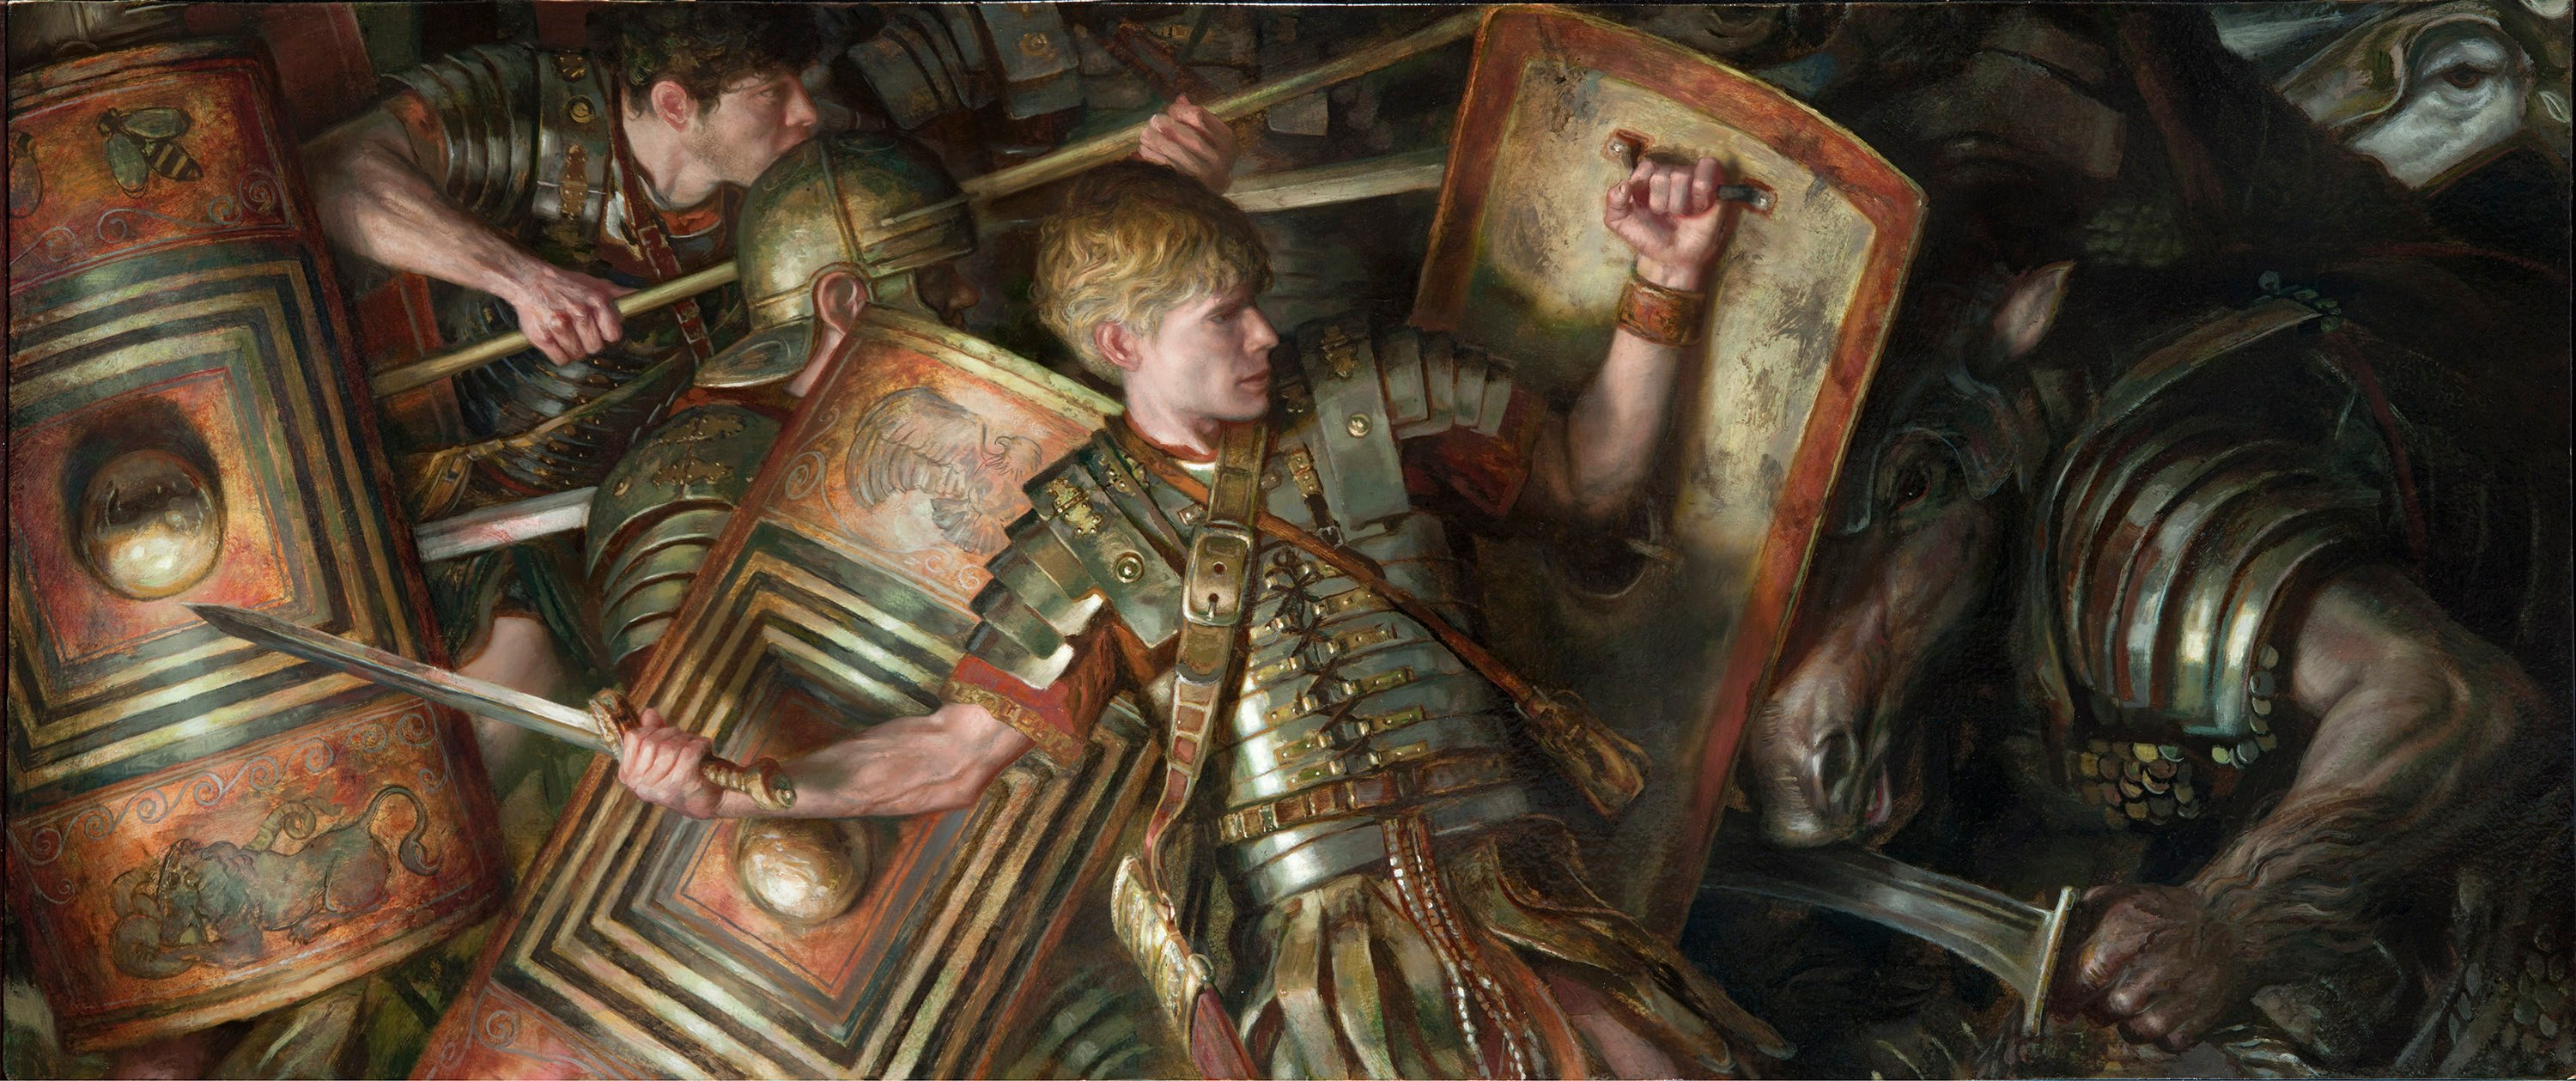 "Roman Legionnaires 24"" x 48""  Oil on Panel  2014 cover commission for Tor books for David Drake novel private collection"